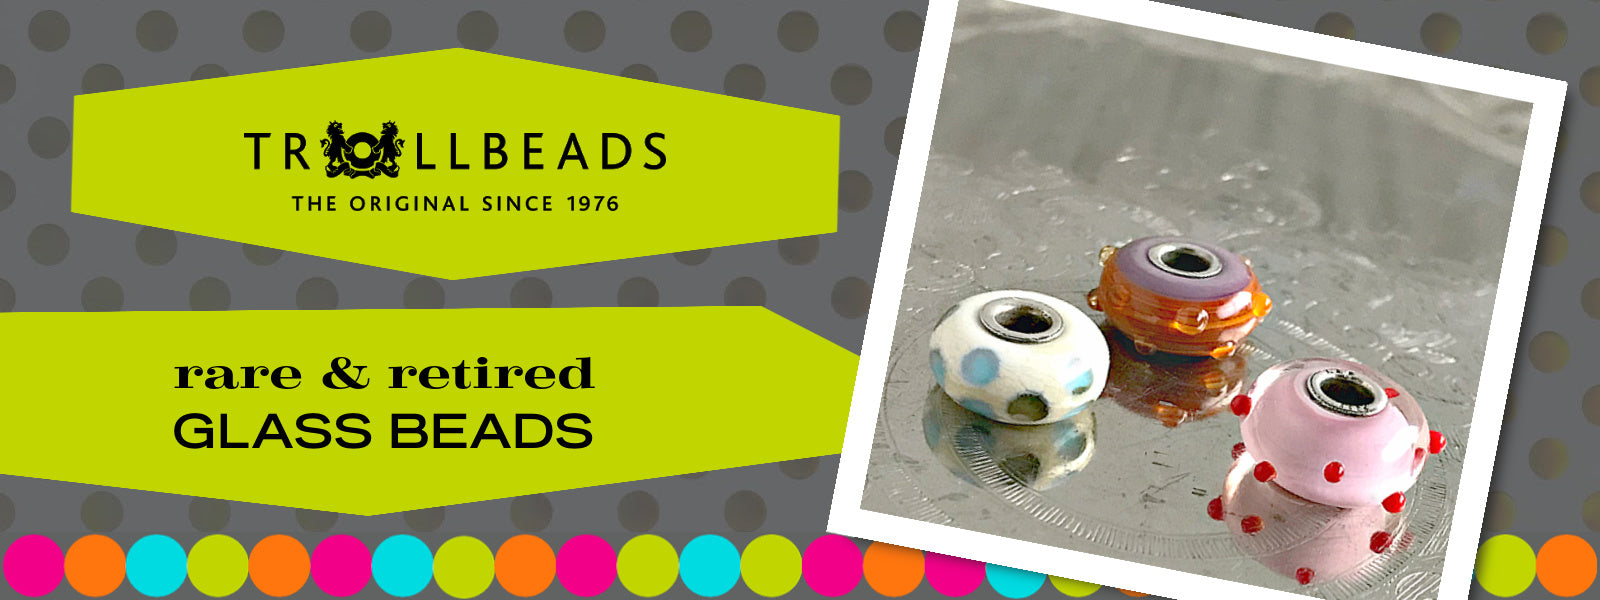 Suzie Q Studio has a treasure vault full of Rare and Retired Trollbeads... and we're making them available to you. Luscious Trollbeads glass beads are handmade of Italian glass and each one is unique.